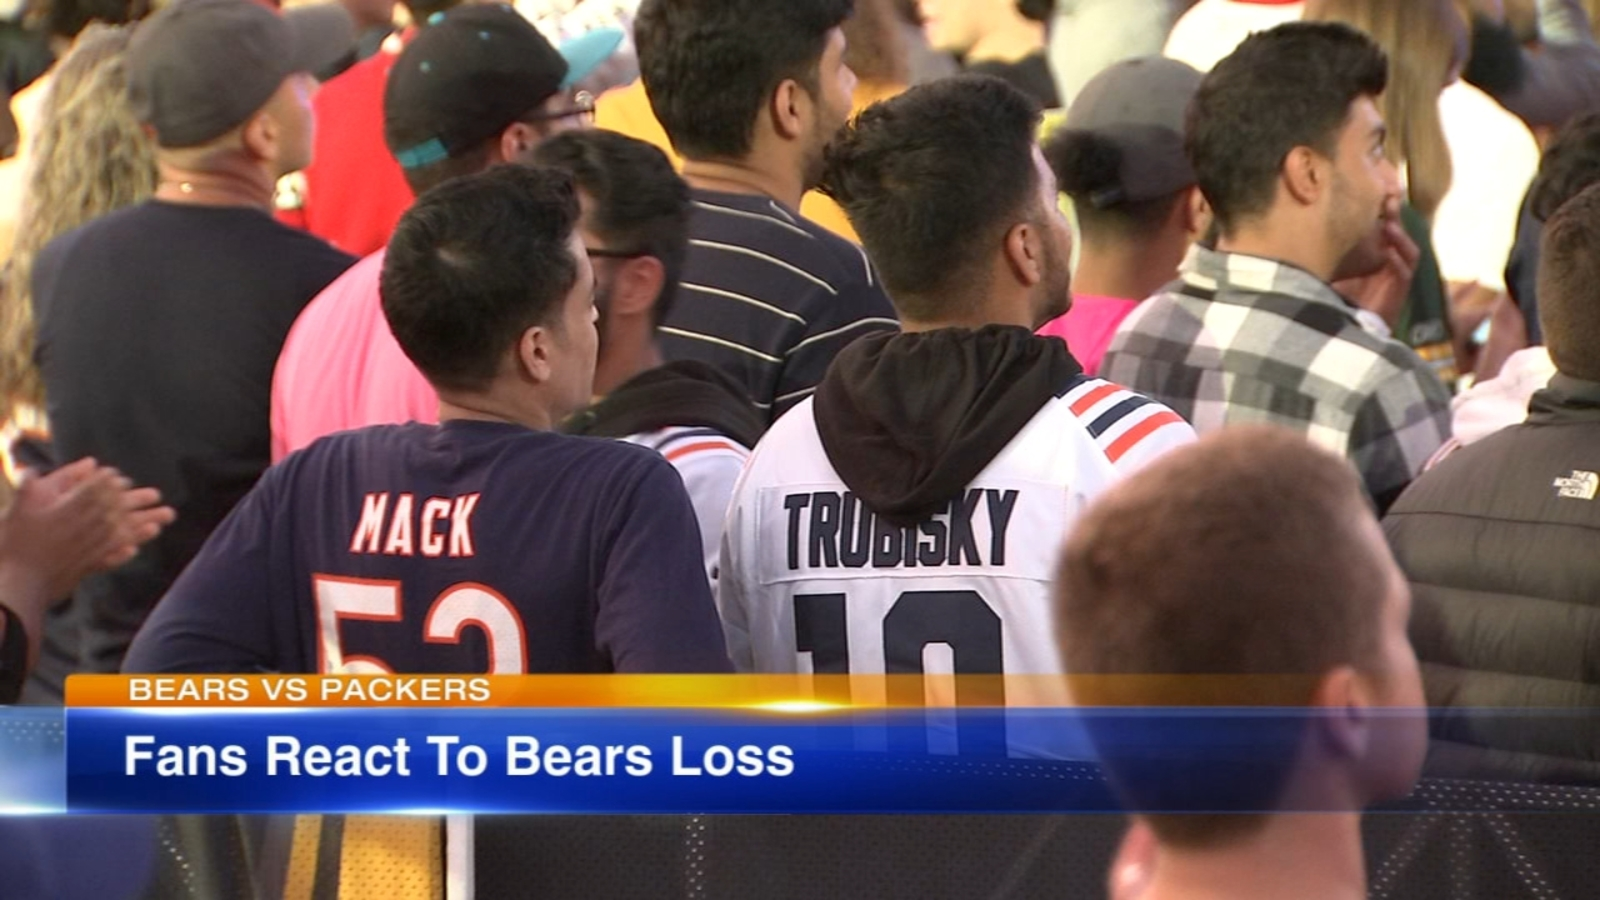 Chicago Bears Lose To Green Bay Packers 10 3 In First Game Nfl S 100th Season On Thursday Night Football At Soldier Field Abc7 Chicago